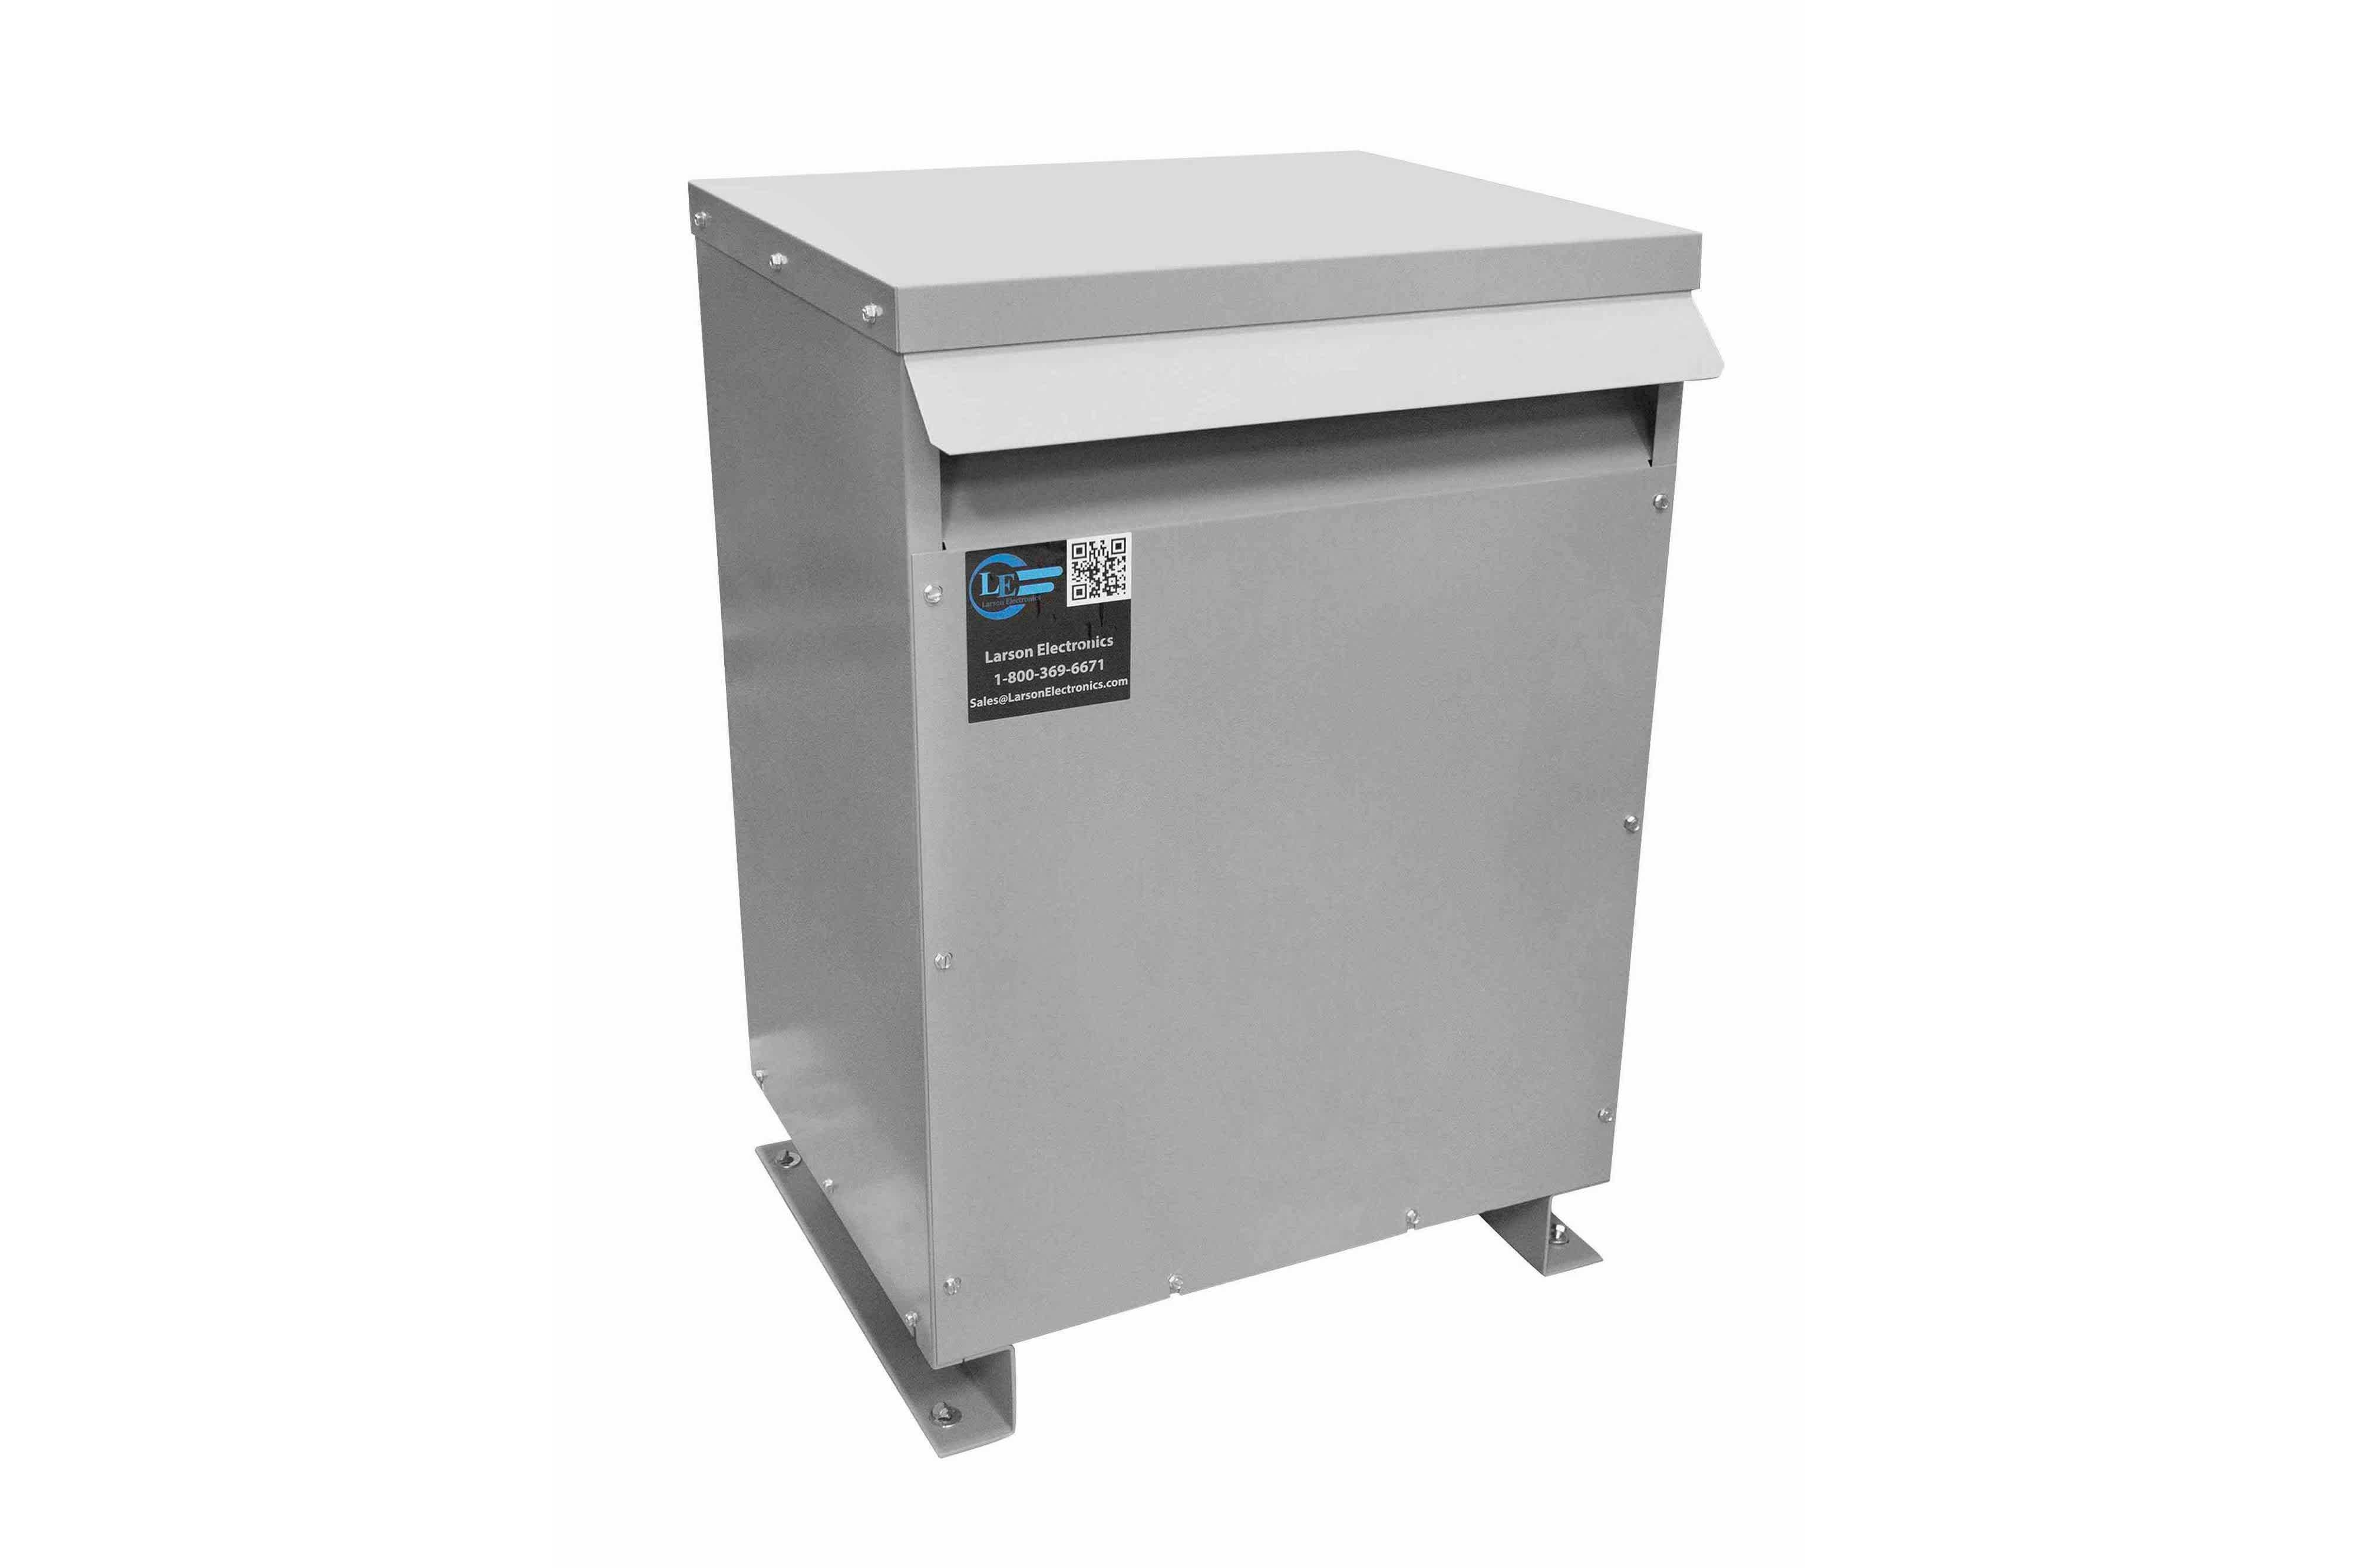 27 kVA 3PH Isolation Transformer, 575V Delta Primary, 240 Delta Secondary, N3R, Ventilated, 60 Hz